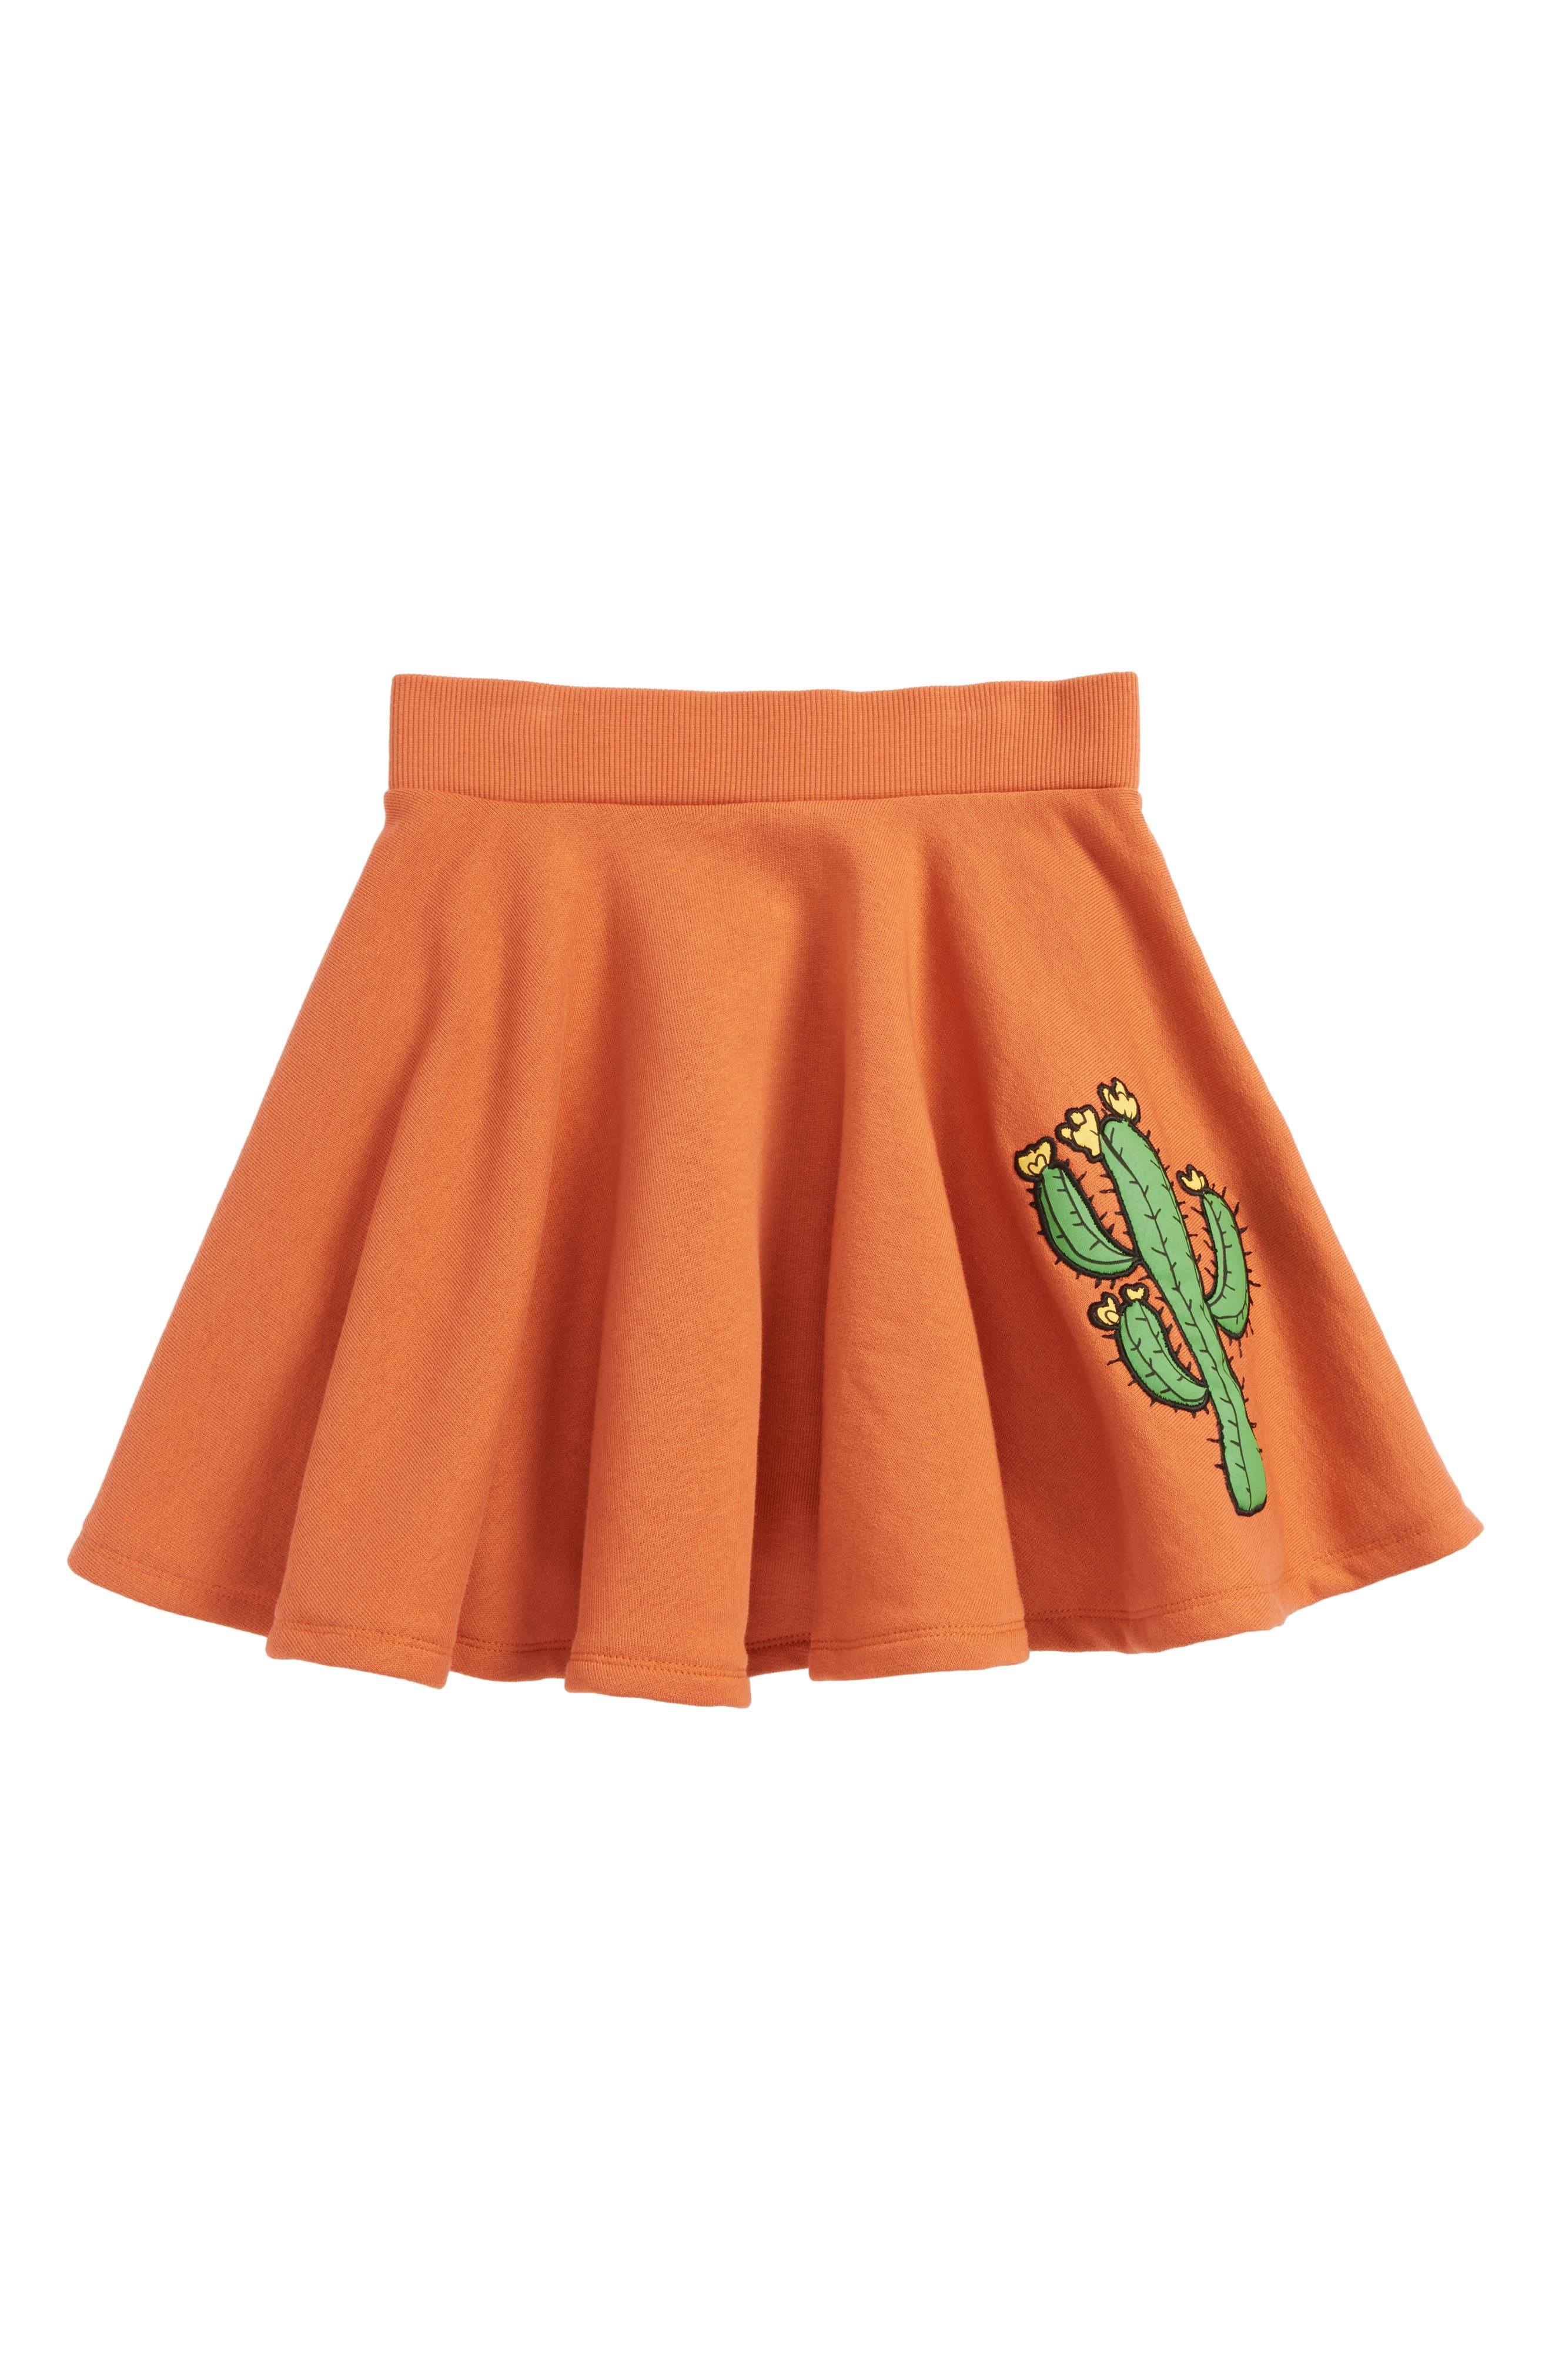 Mini Rodini Appliqué Cactus Organic Cotton Circle Skirt (Toddler Girls & Little Girls)